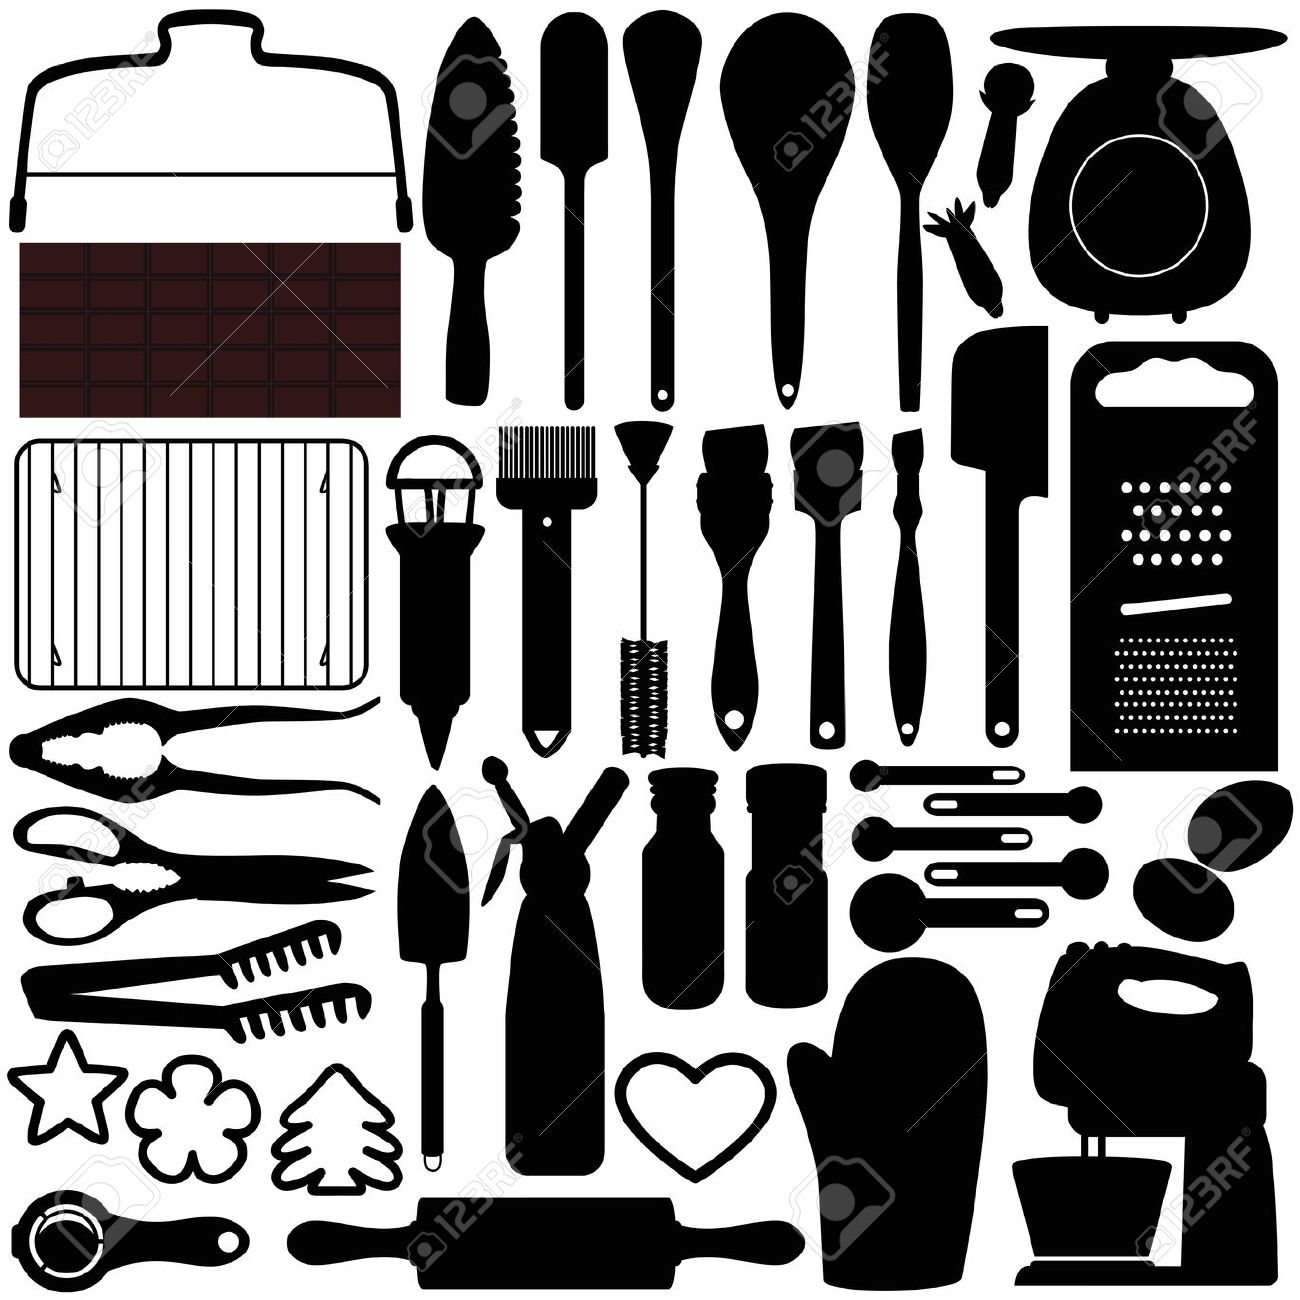 Silhouet Keuken Pastry Utensils Clipart Clipground